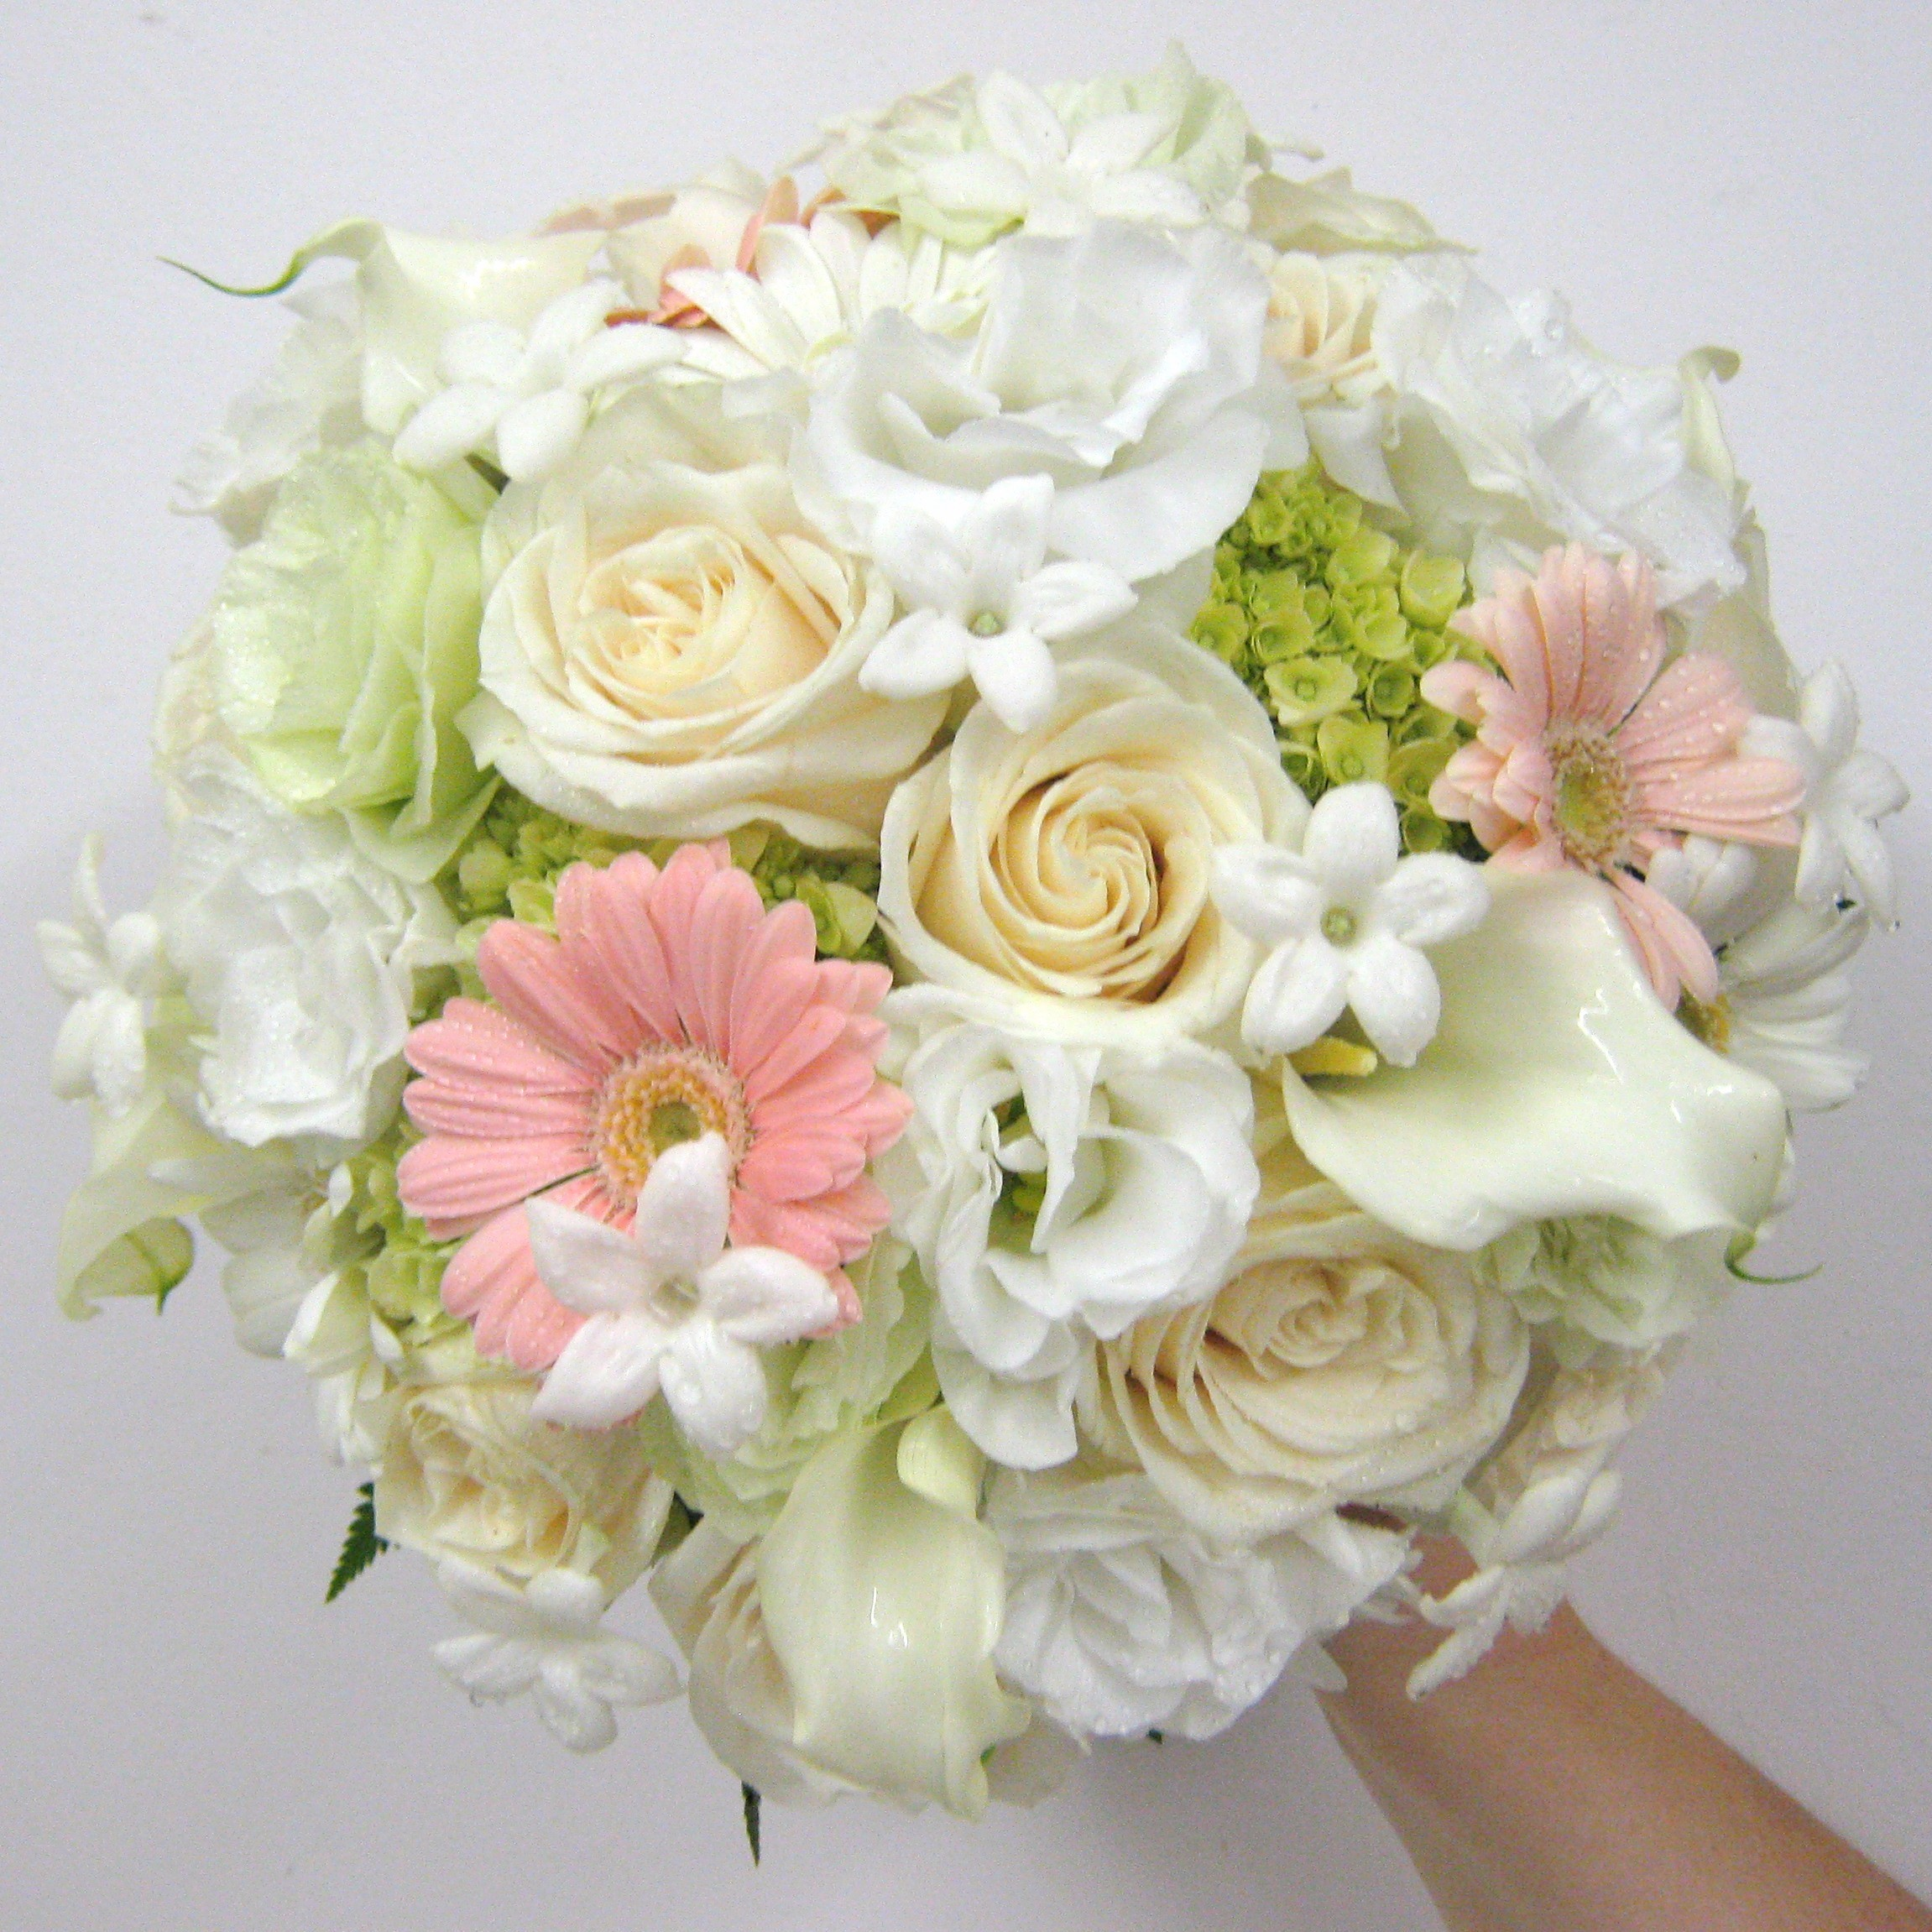 Elegant Wedding Flowers: Buffalo Wedding & Event Flowers By